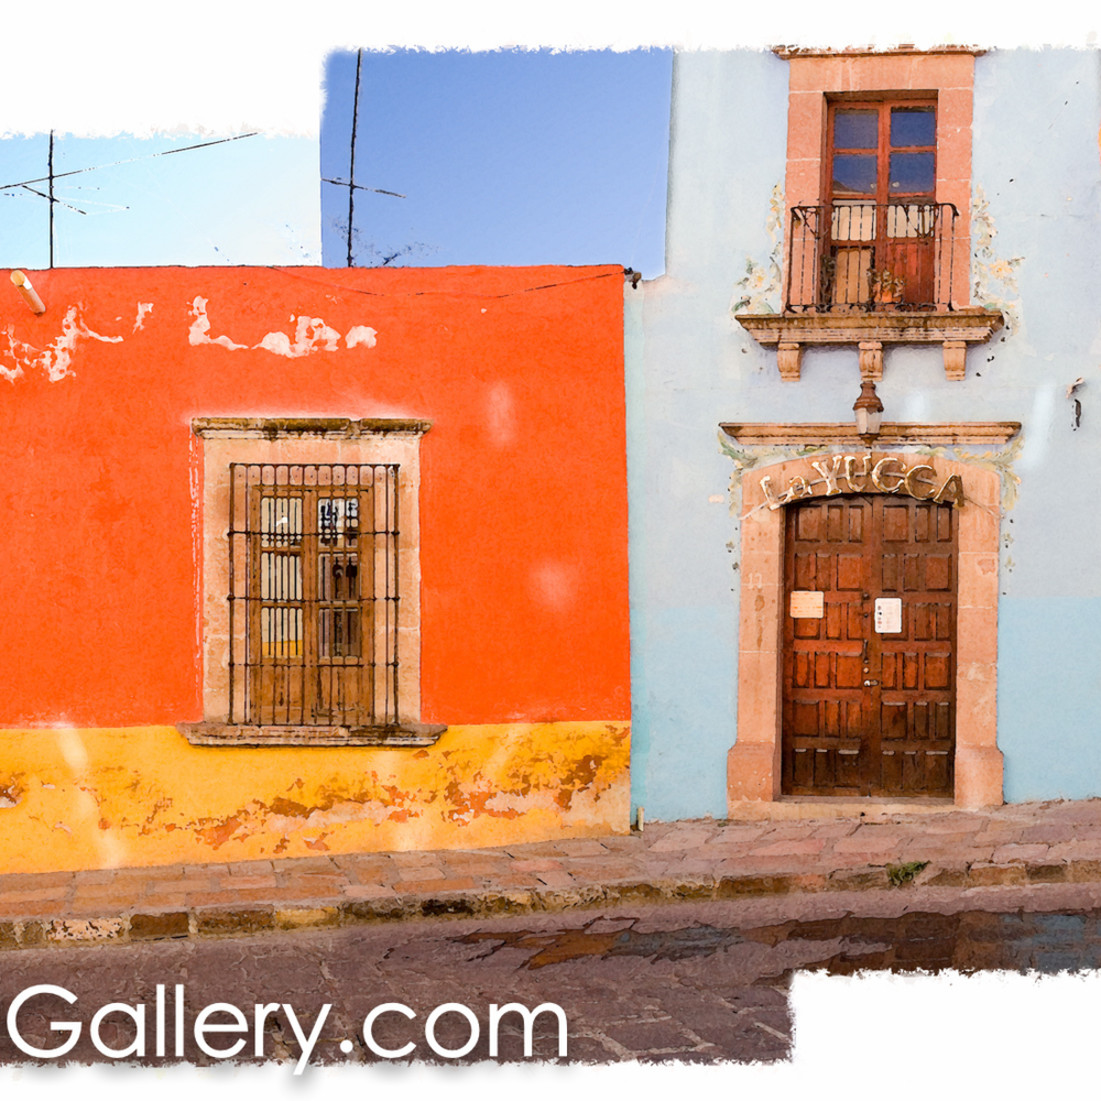 Streets of san miguel wfsi6t